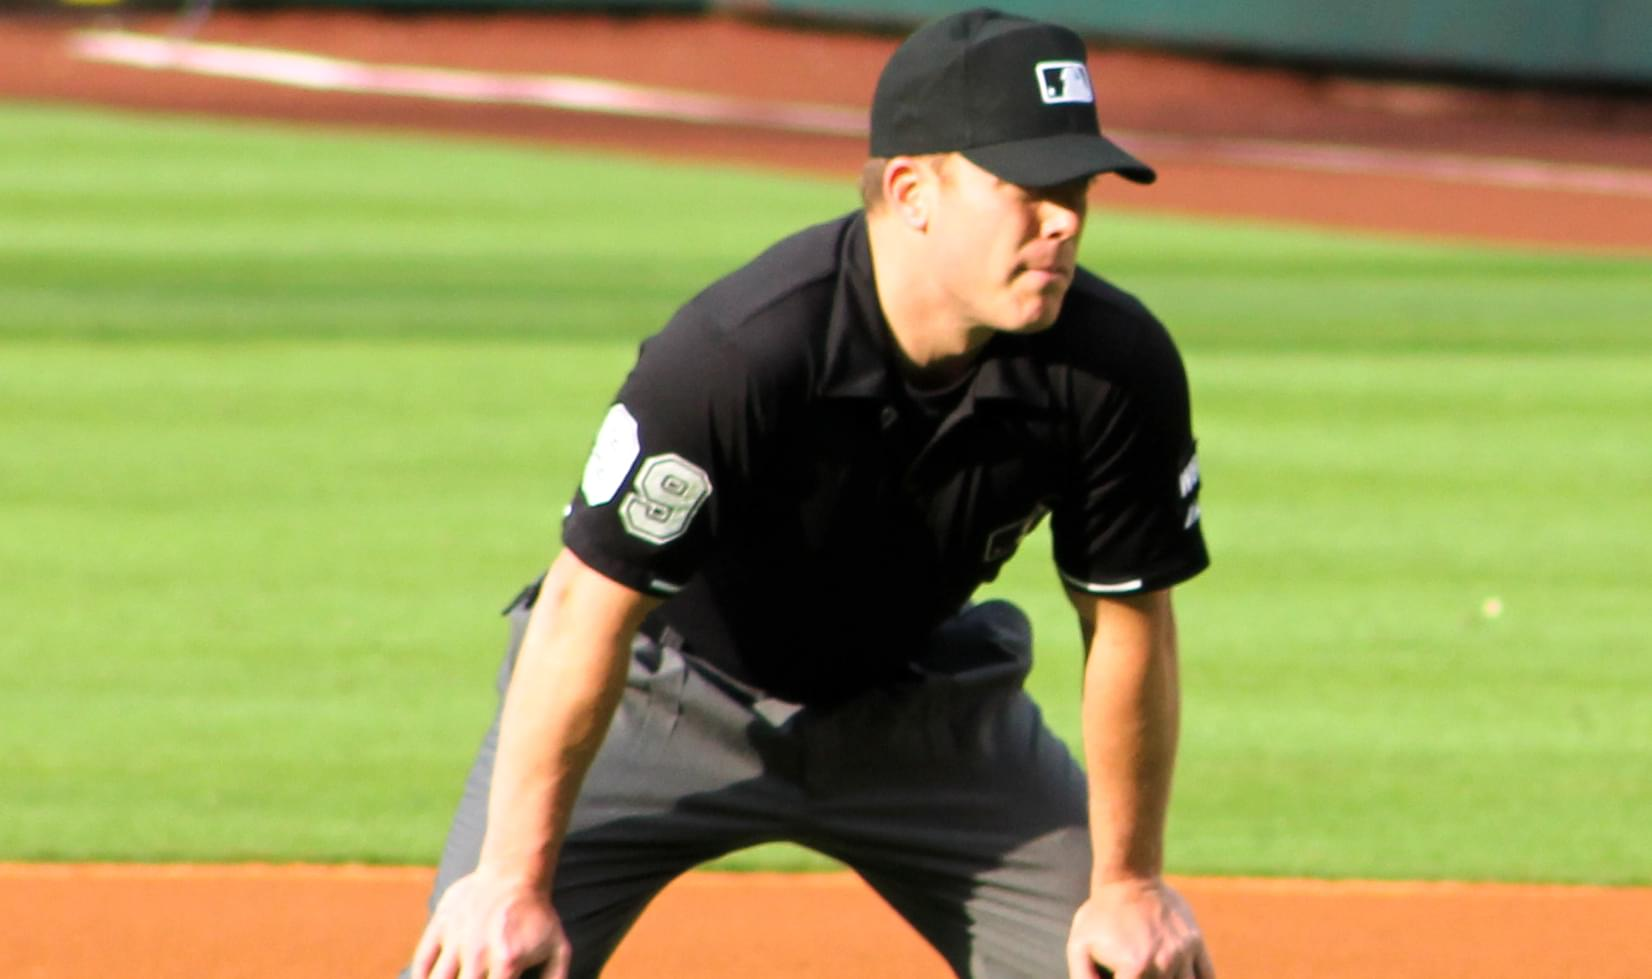 FORMER MLB UMPIRE LIVING IN BOISE: TRYING TO GET MORE PEOPLE INVOLVED